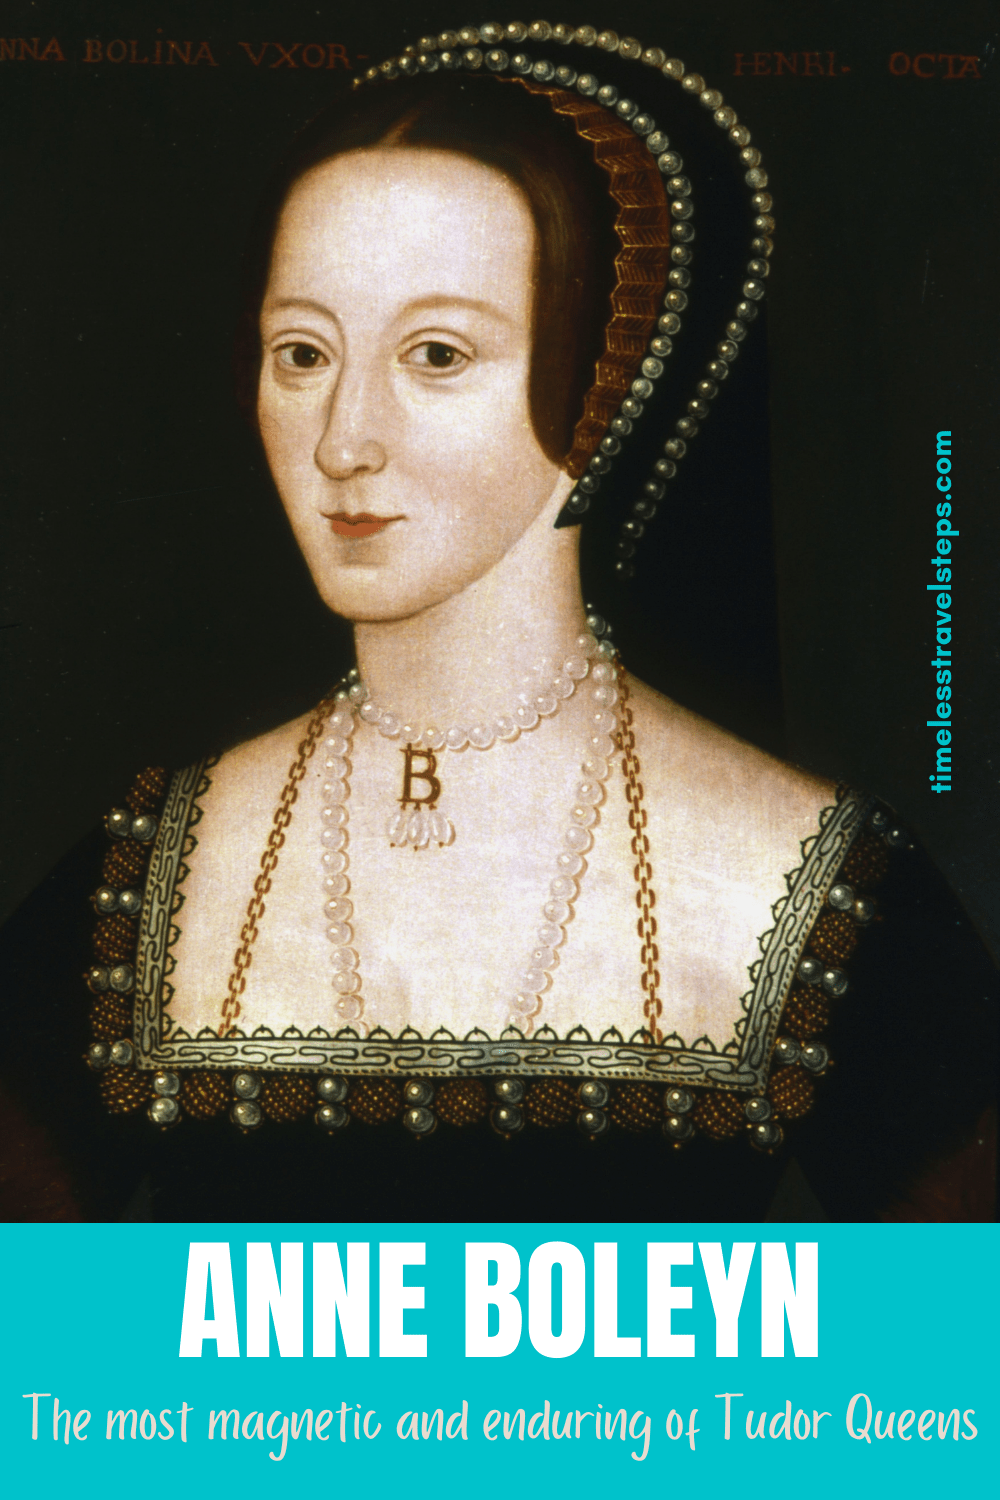 Even after 500 years the name Anne Boleyn commands attention and research making her the most magnetic and enduring of Tudor Queens. Read her story | Anne Boleyn | History of Britain | Tudor Queen | Tower of London | via @GGeorgina_mytimelessfootsteps/